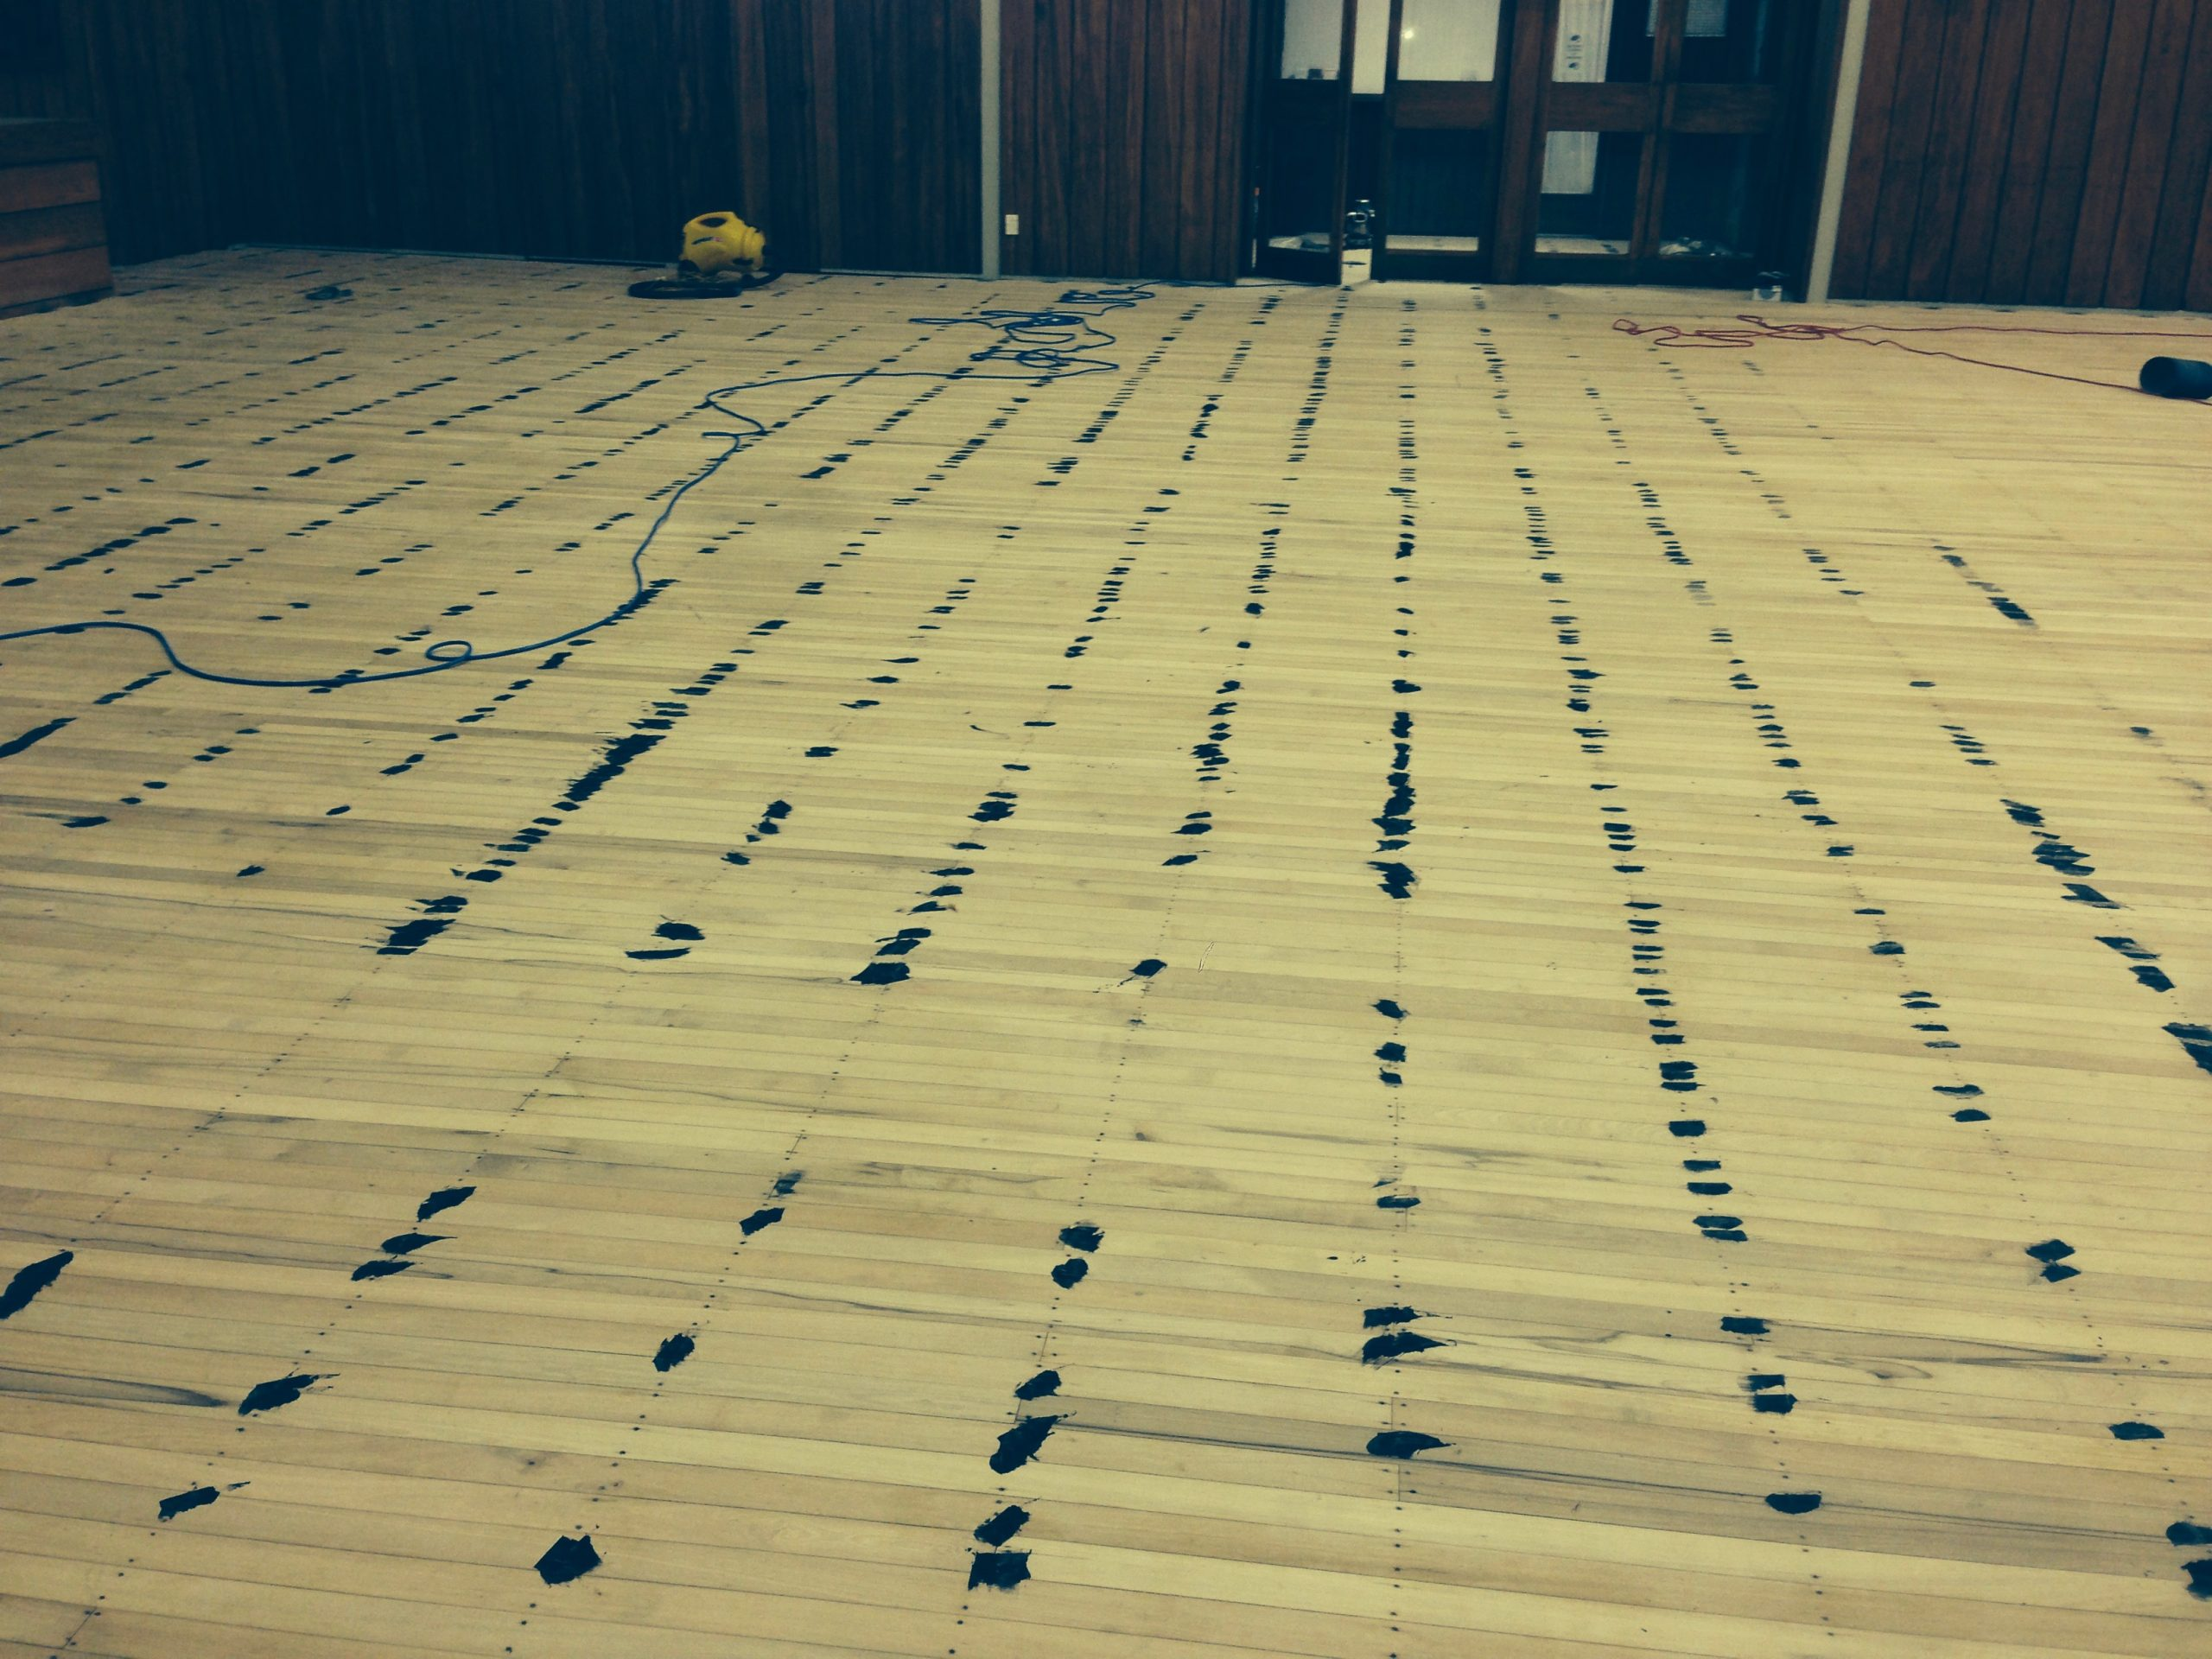 https://coastflooring.co.nz/wp-content/uploads/2020/05/floor-preparation-scaled.jpg